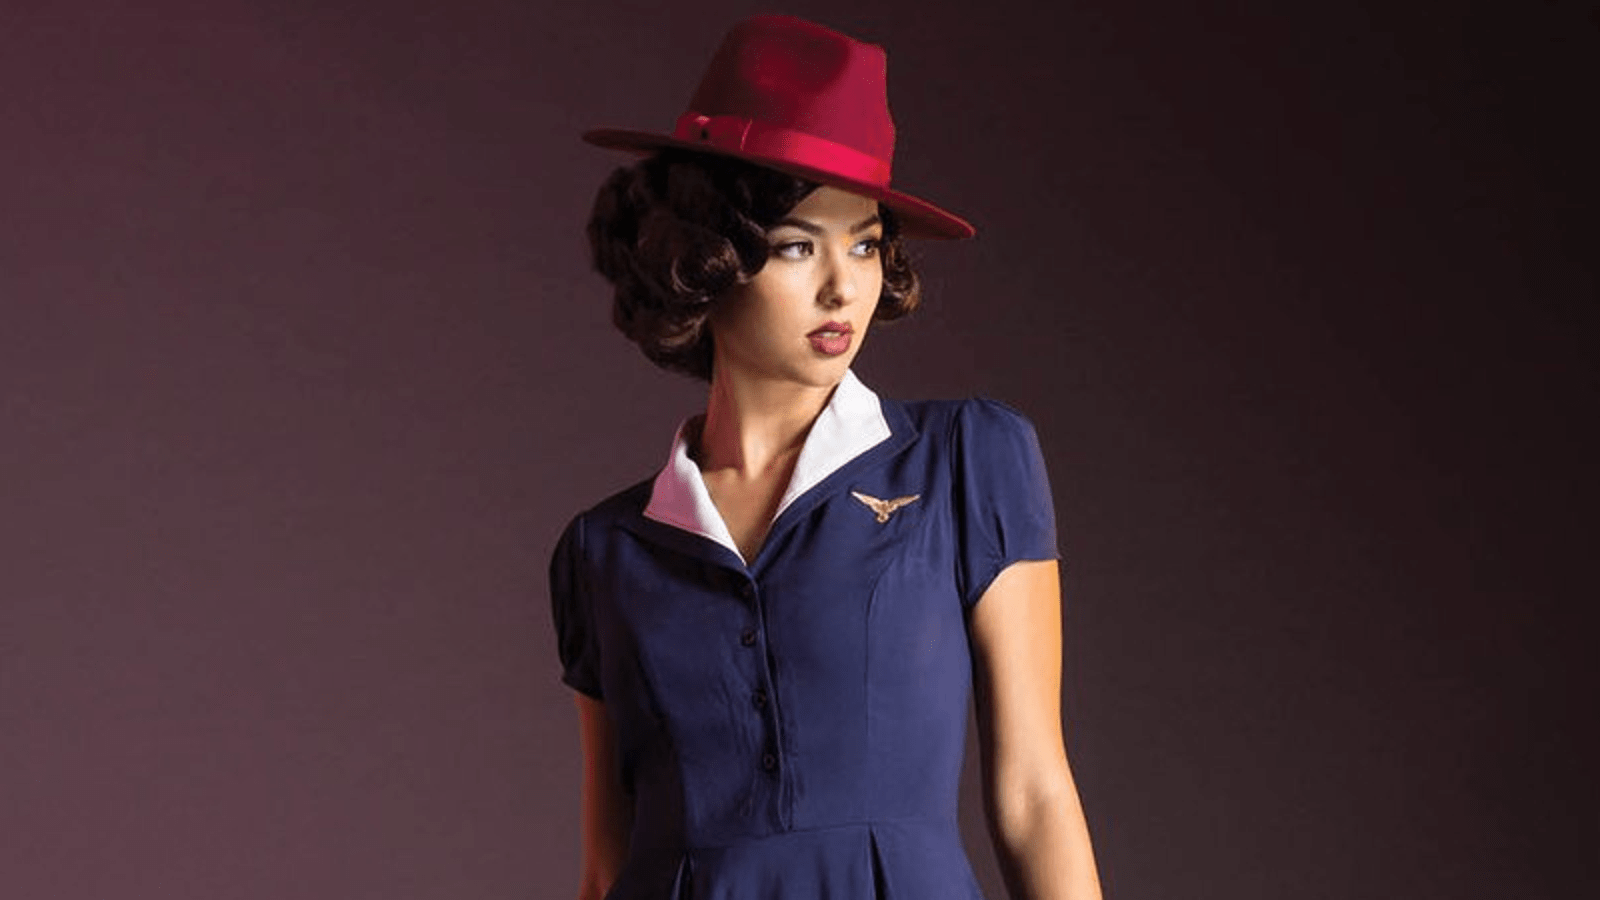 Oh My God This Agent Carter Dress